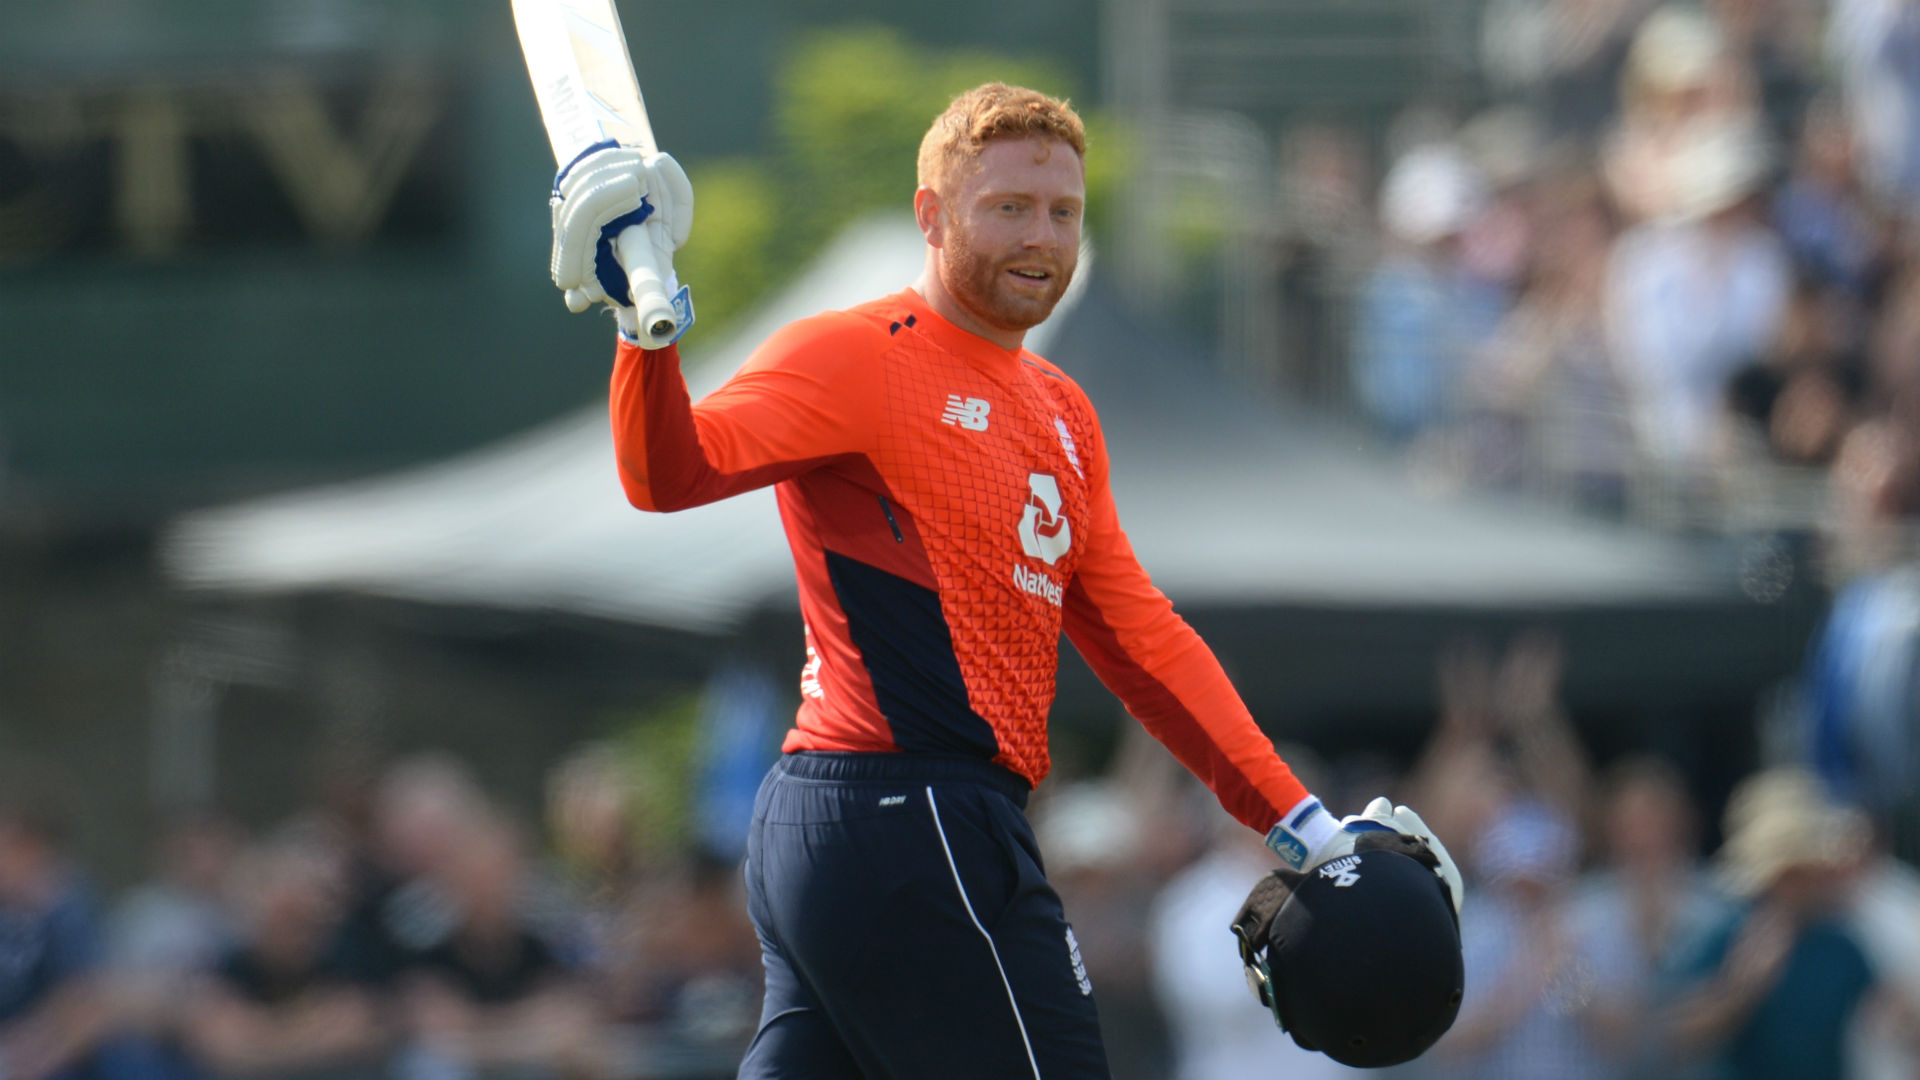 England ready to scrap for wins in Sri Lanka – Bairstow